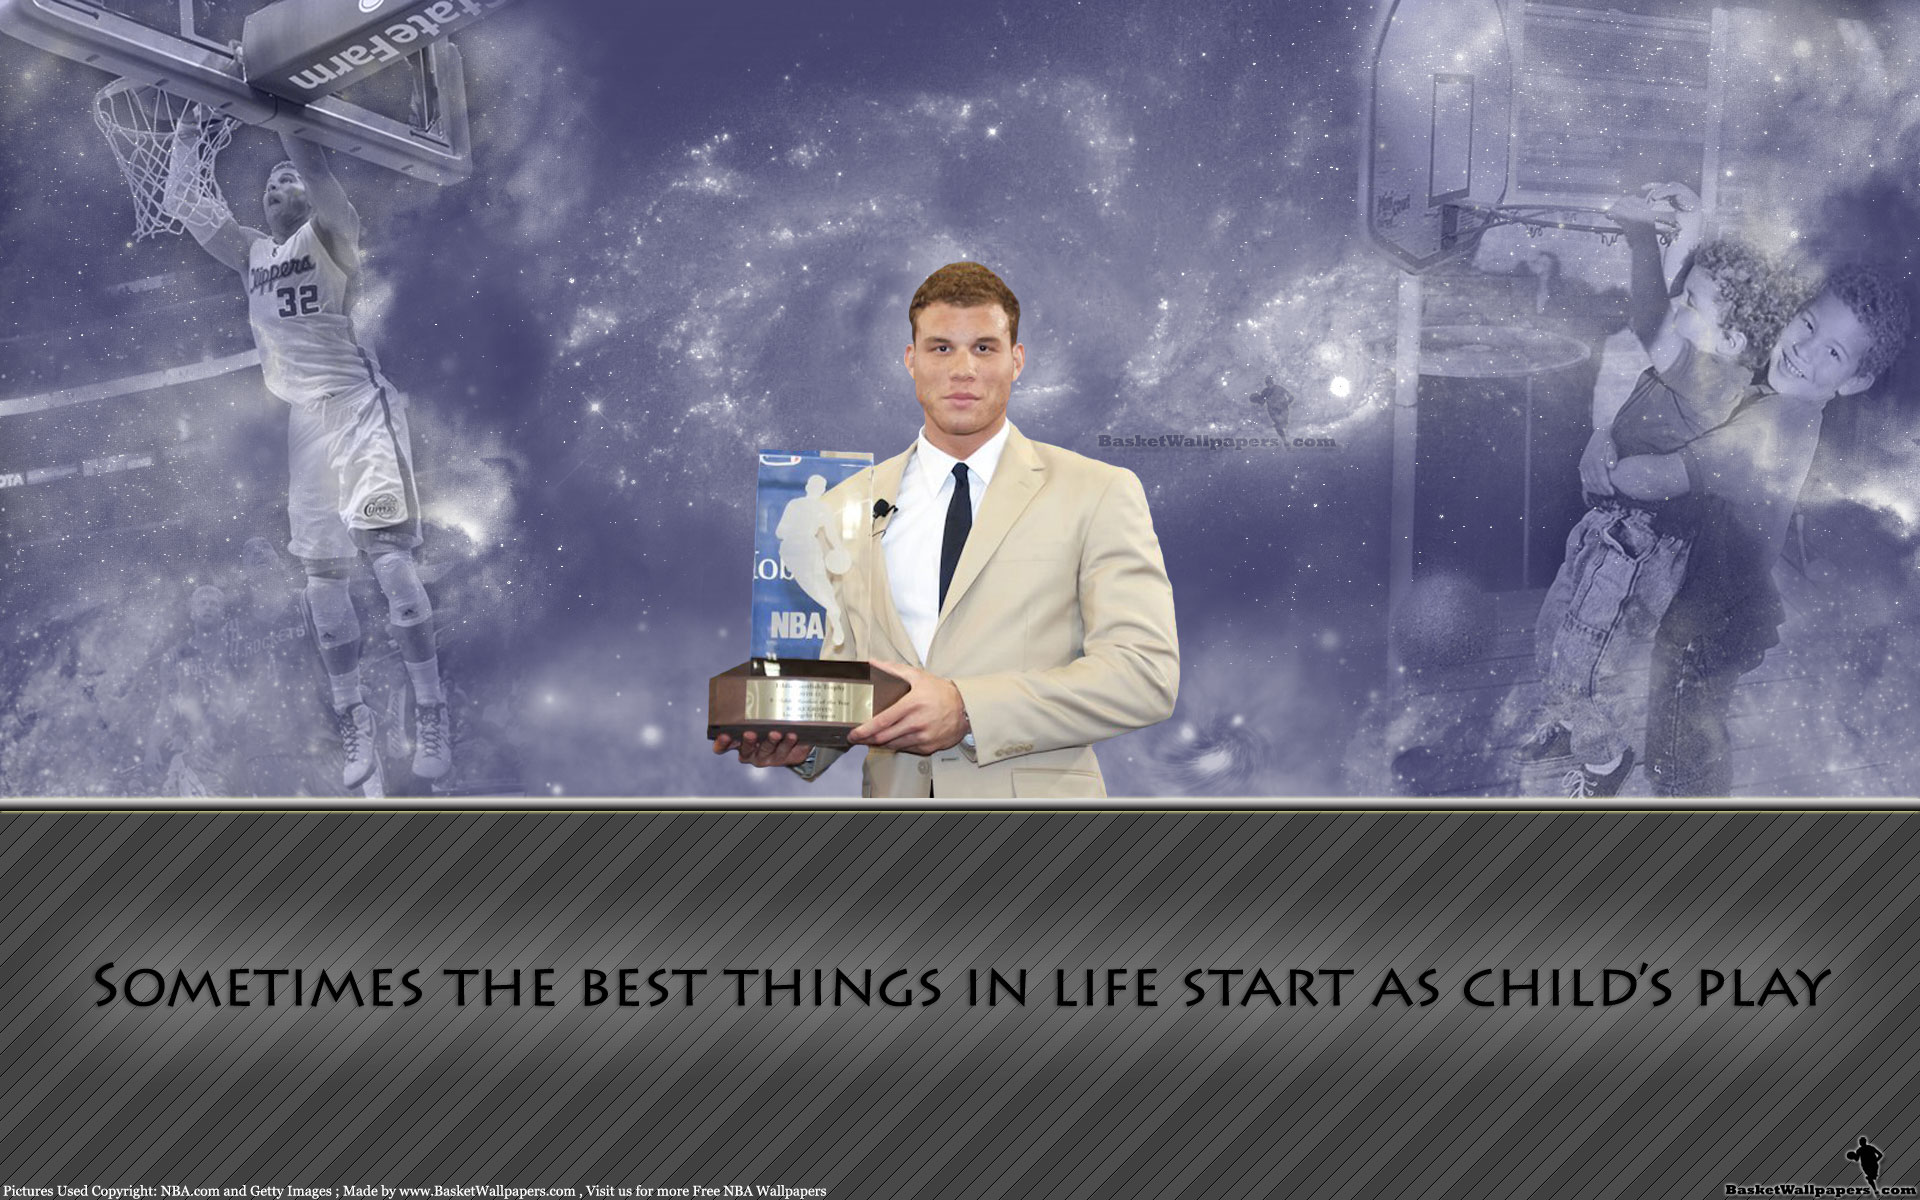 http://www.basketwallpapers.com/Images-10/Blake-Griffin-Child-Dunk-Widescreen-Wallpaper-BasketWallpapers.com-.jpg